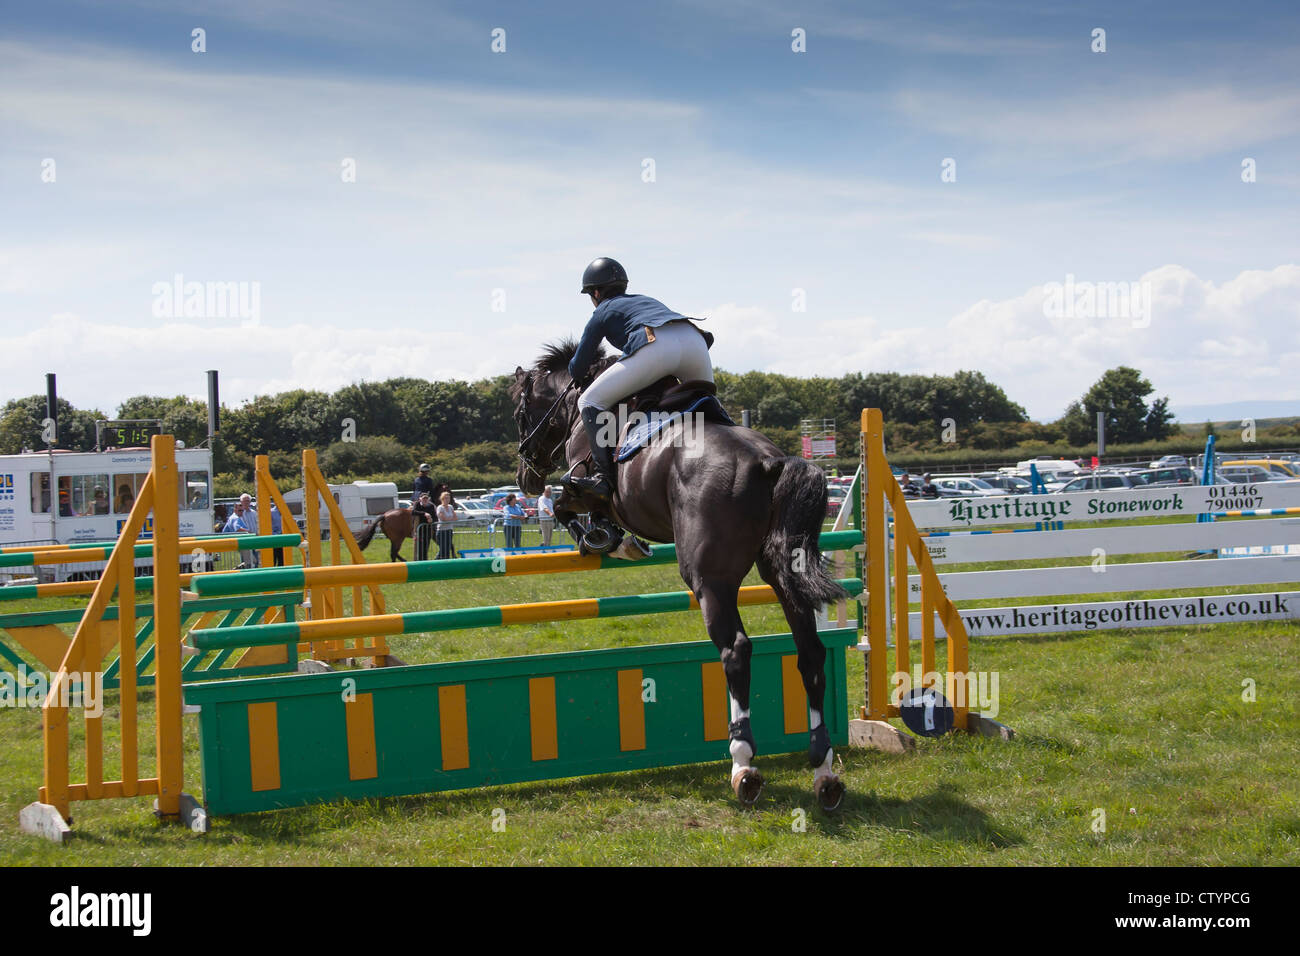 Show jumping lady rider rear view - Stock Image